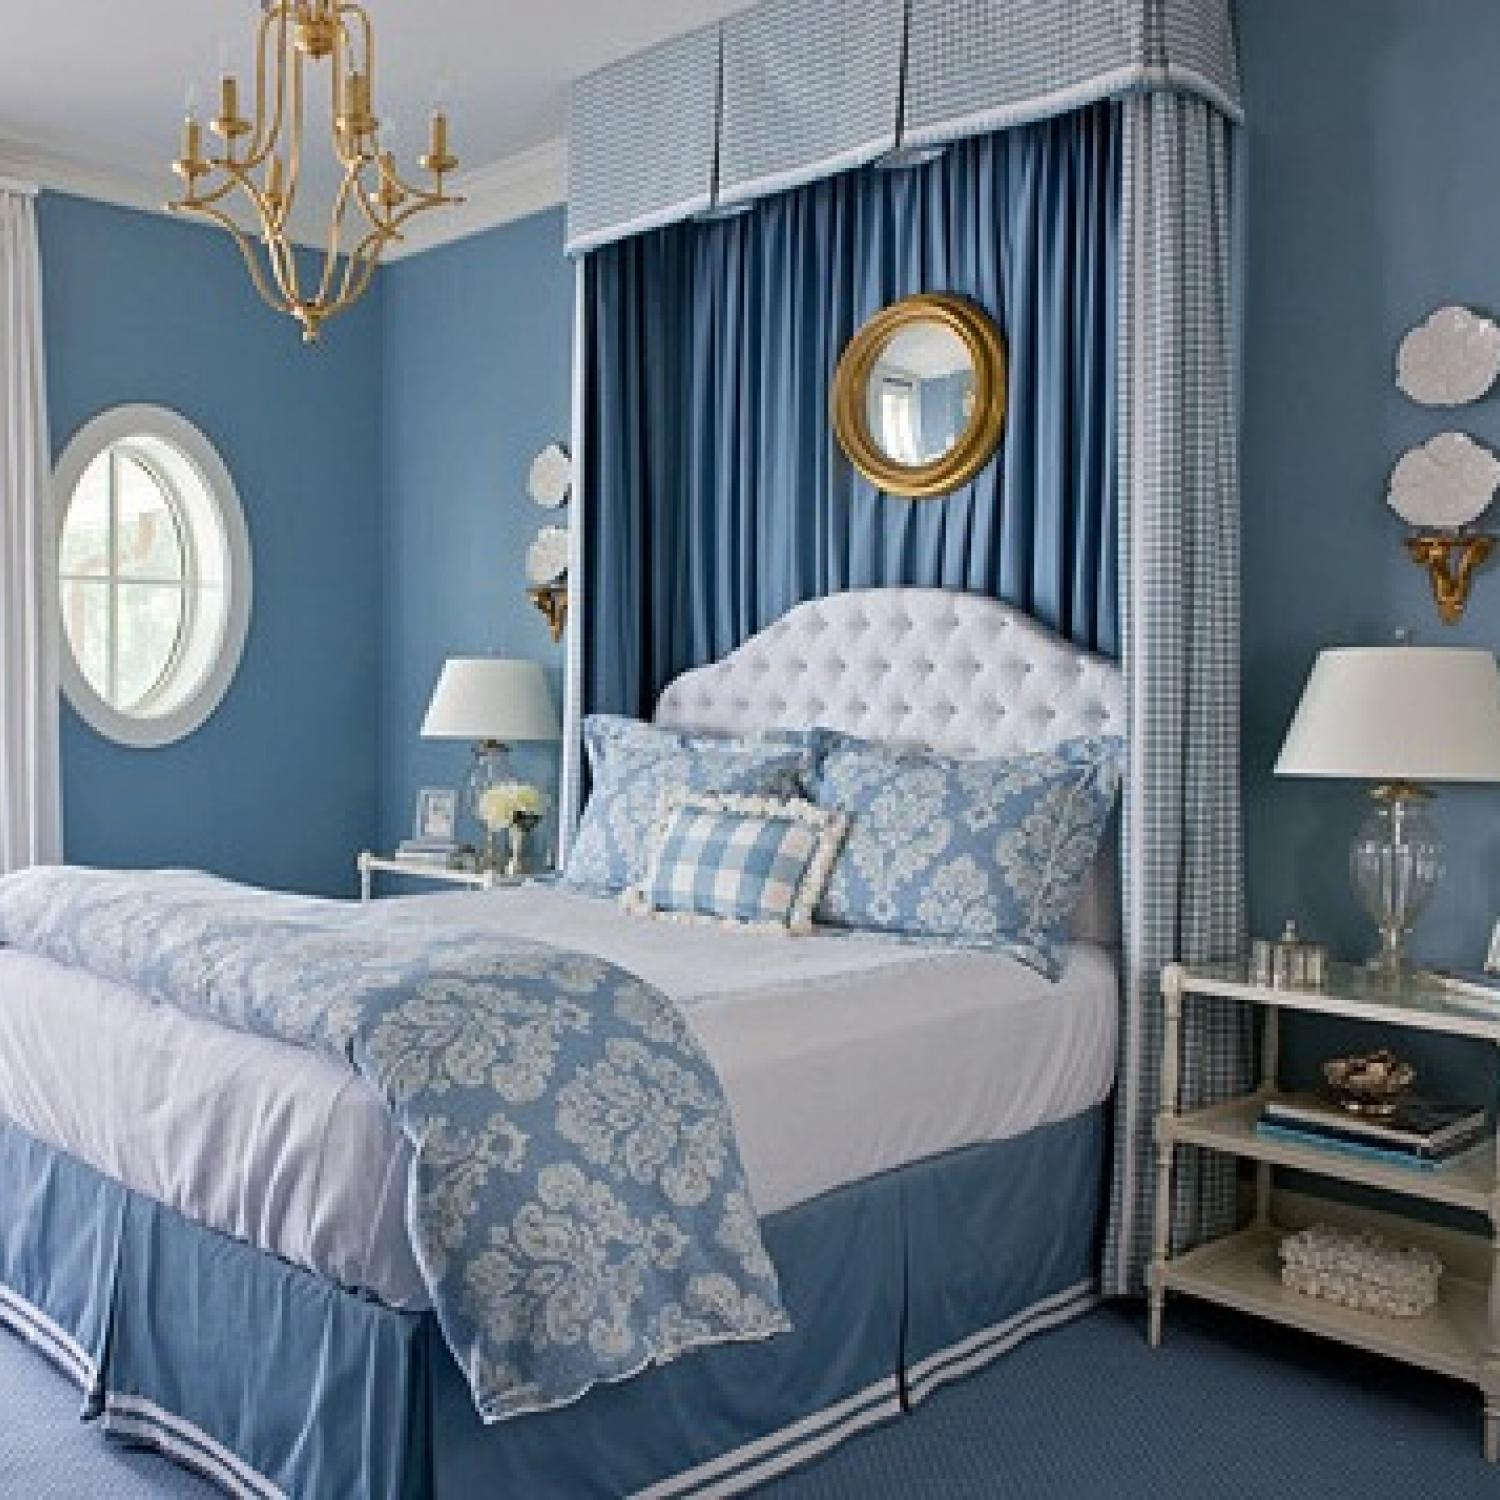 25 Bedroom Design Ideas For Your Home: Beautiful Blue Bedrooms